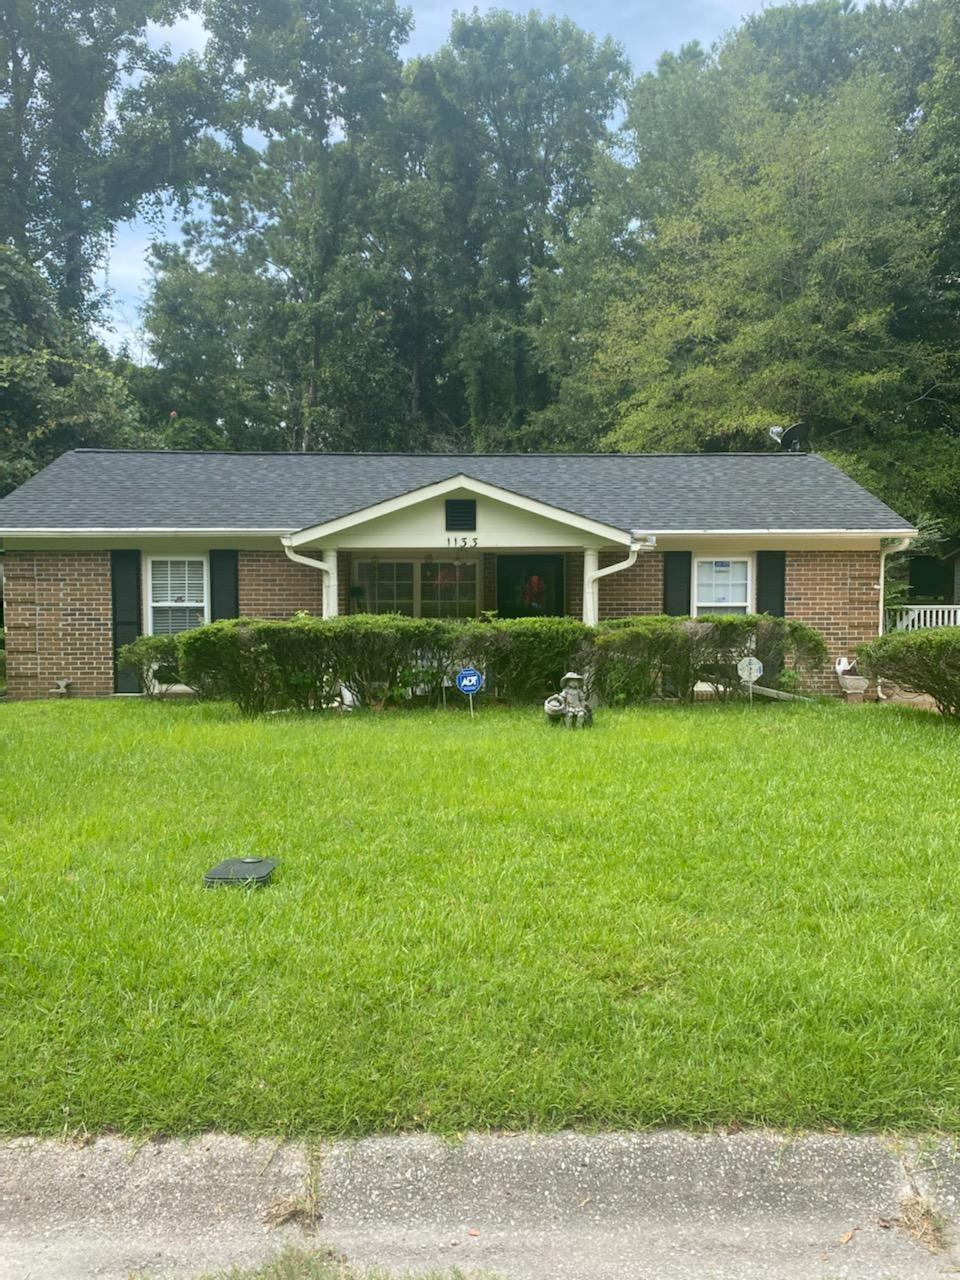 Hickory Shadows Homes For Sale - 1133 Shadow, Mount Pleasant, SC - 0